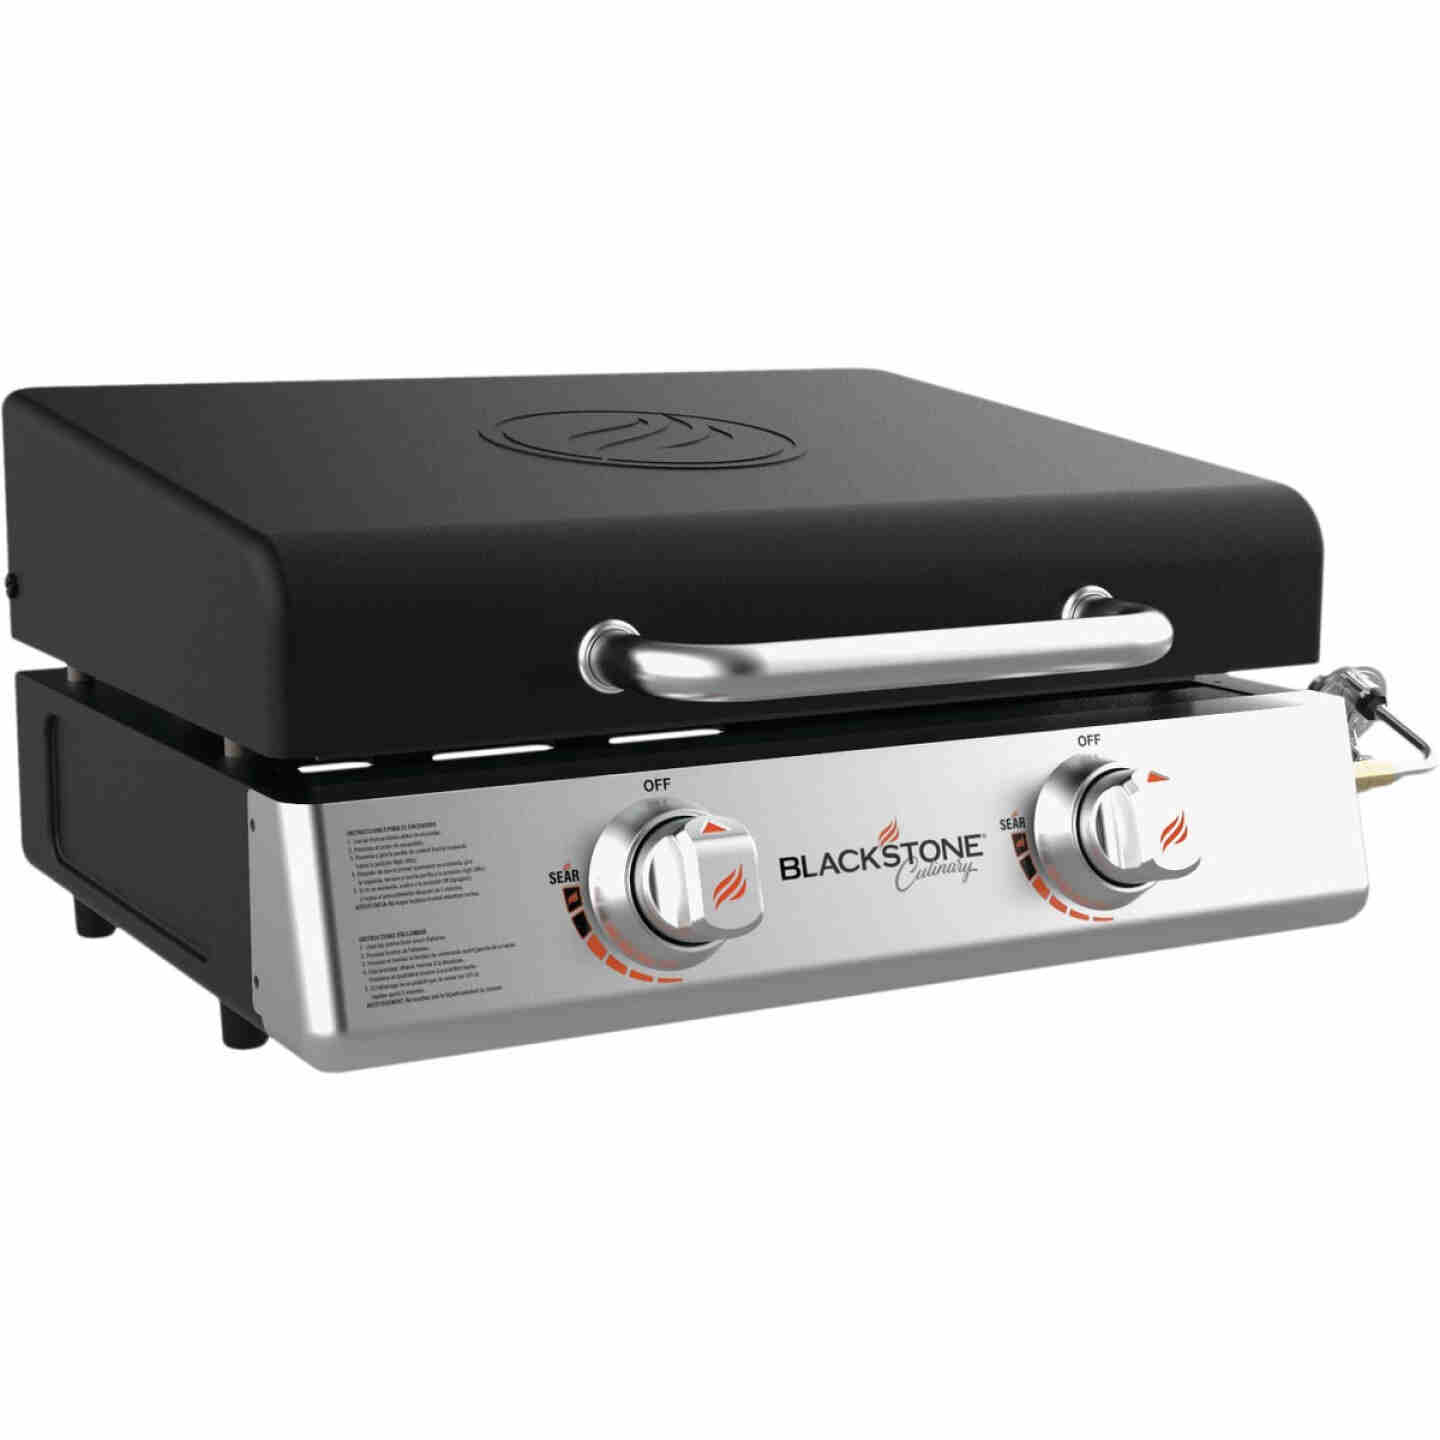 Blackstone 339 Sq. In. Table Top Gas Griddle Image 1